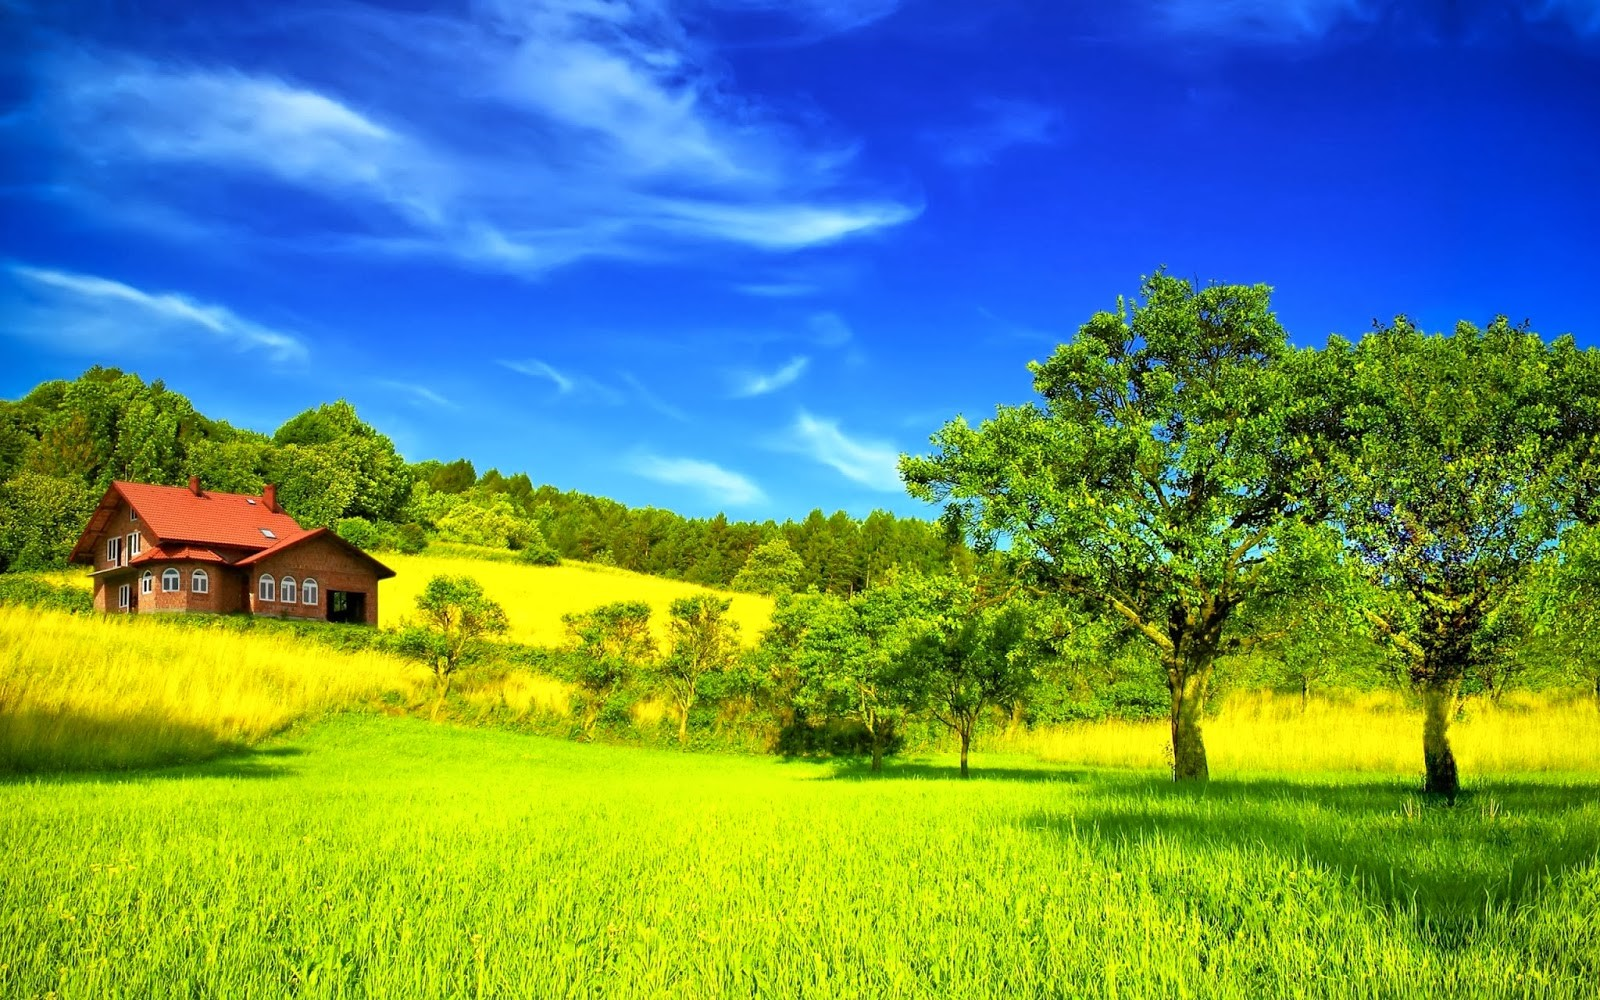 Most Beautiful Green Nature Wallpapers In The World Hd Wallpaper